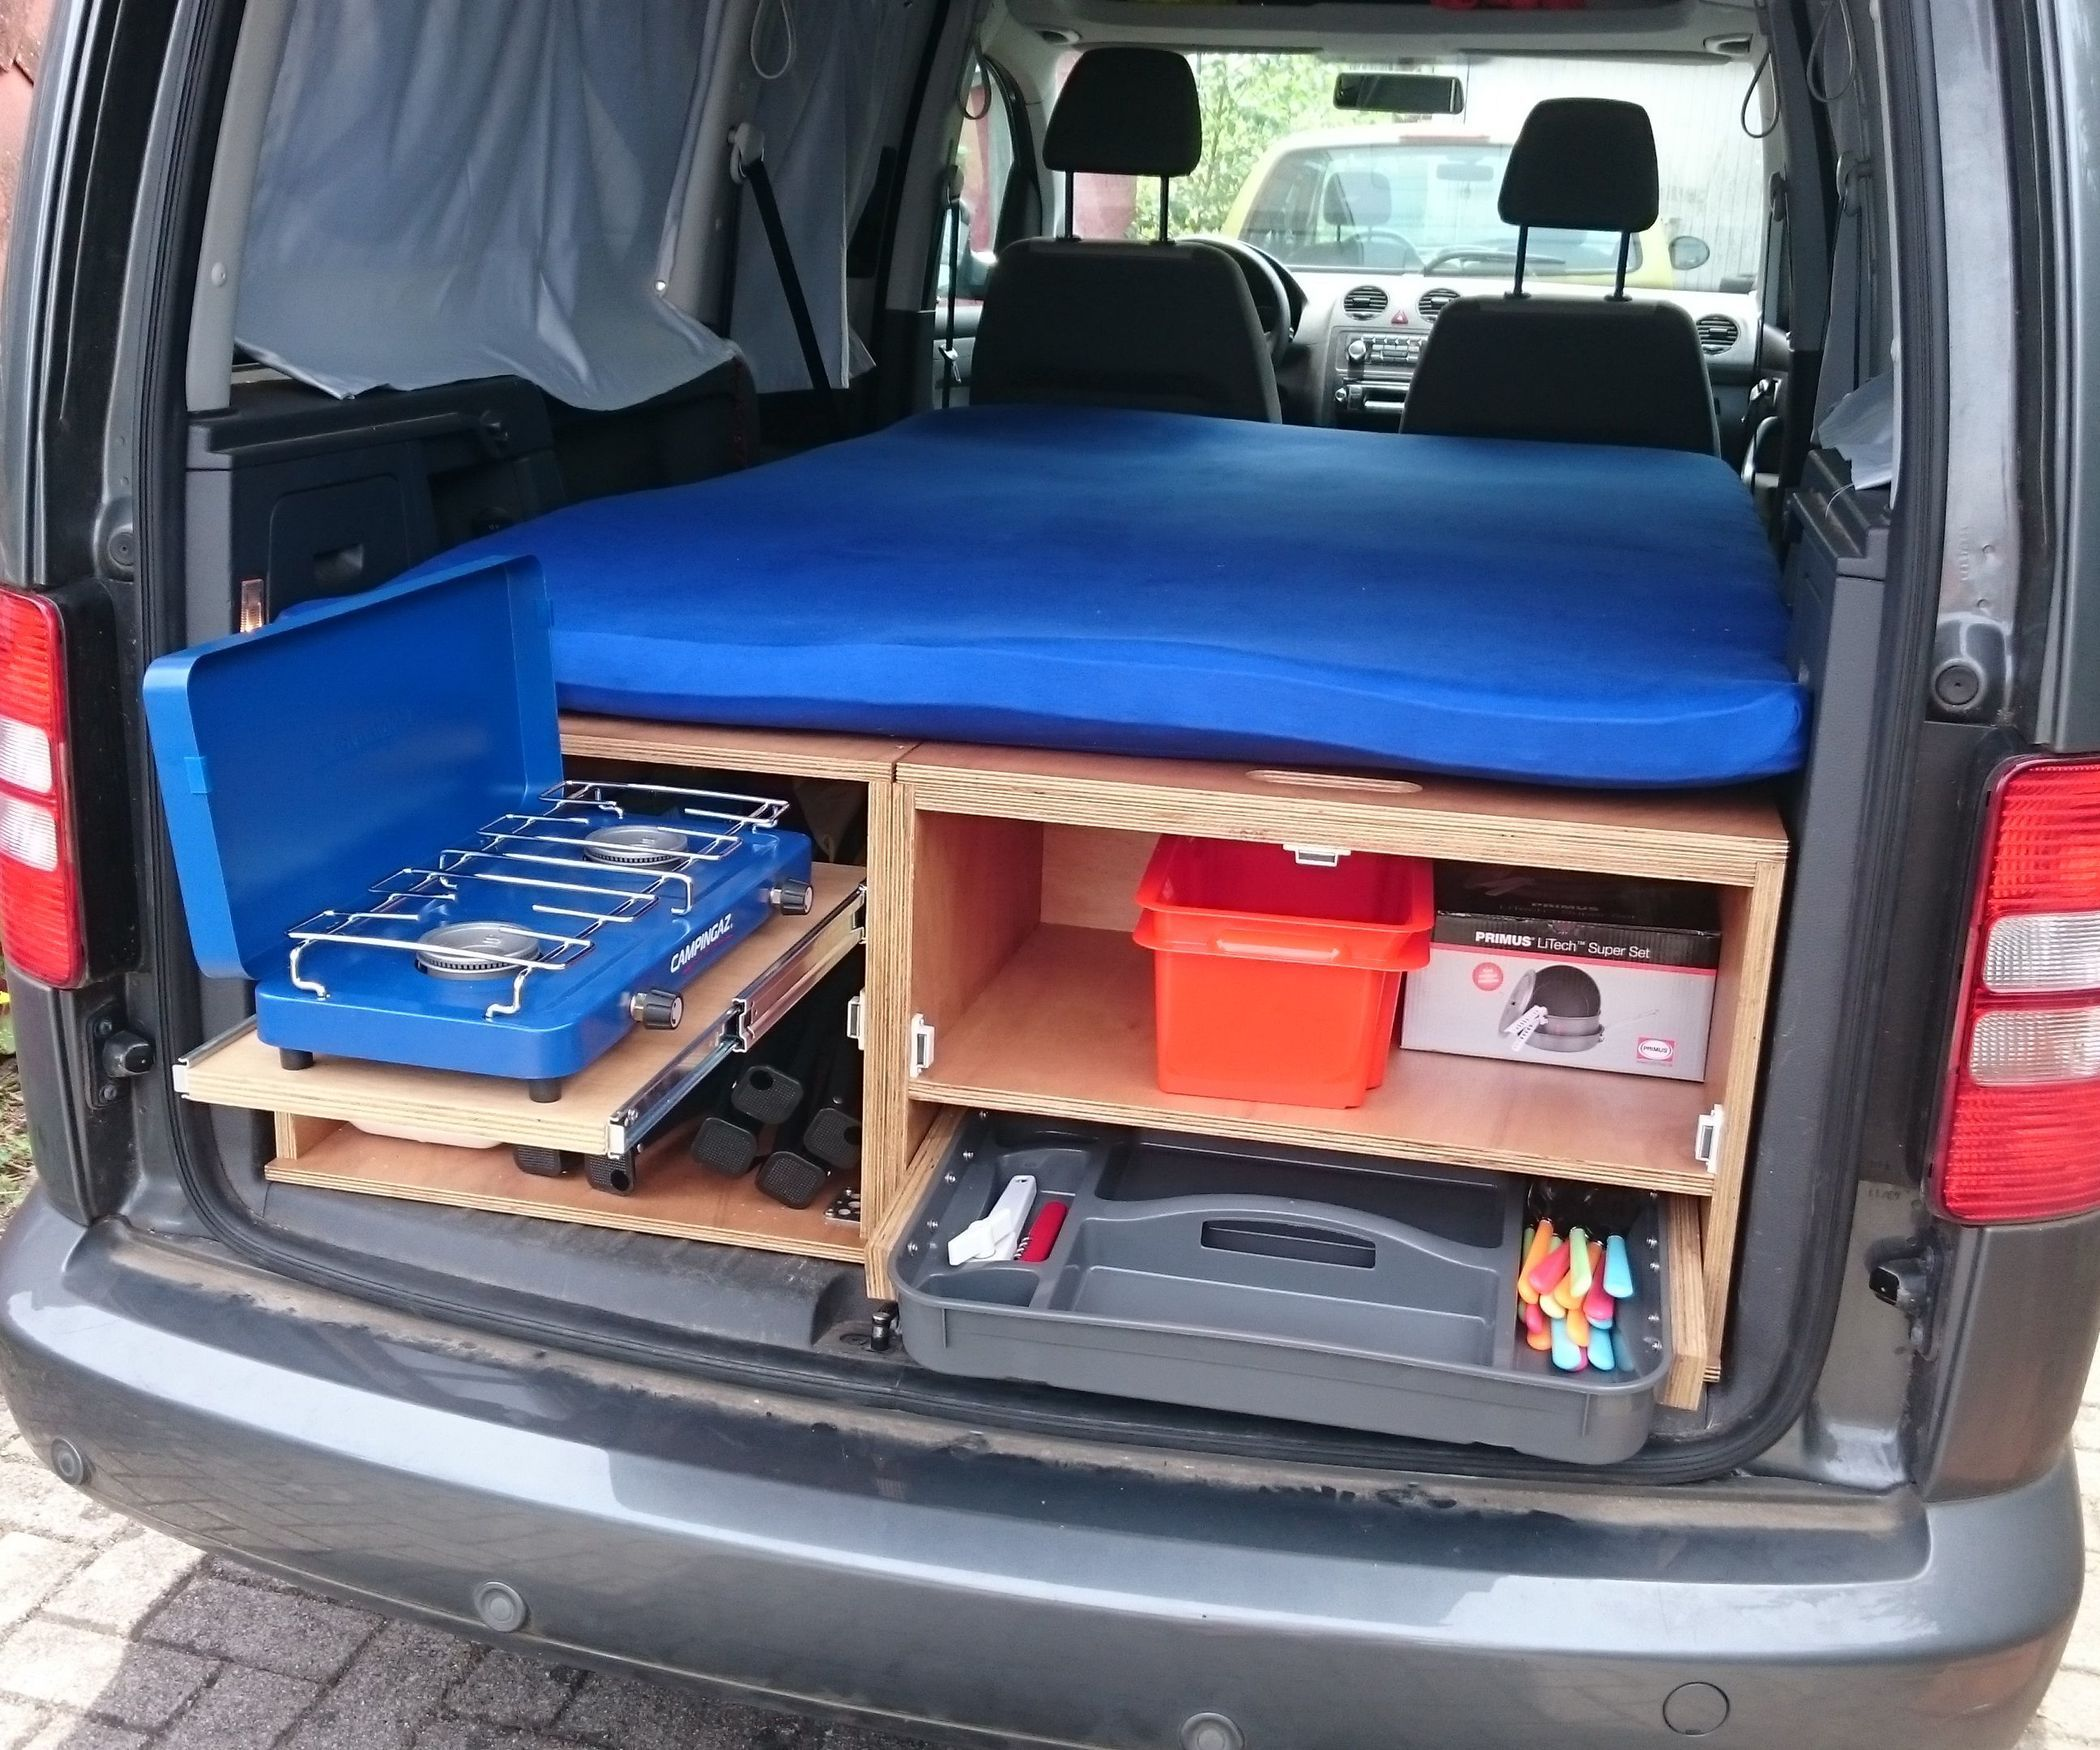 Vw Motor Swap Kits: Vw Caddy Maxi, Vans And Van Life